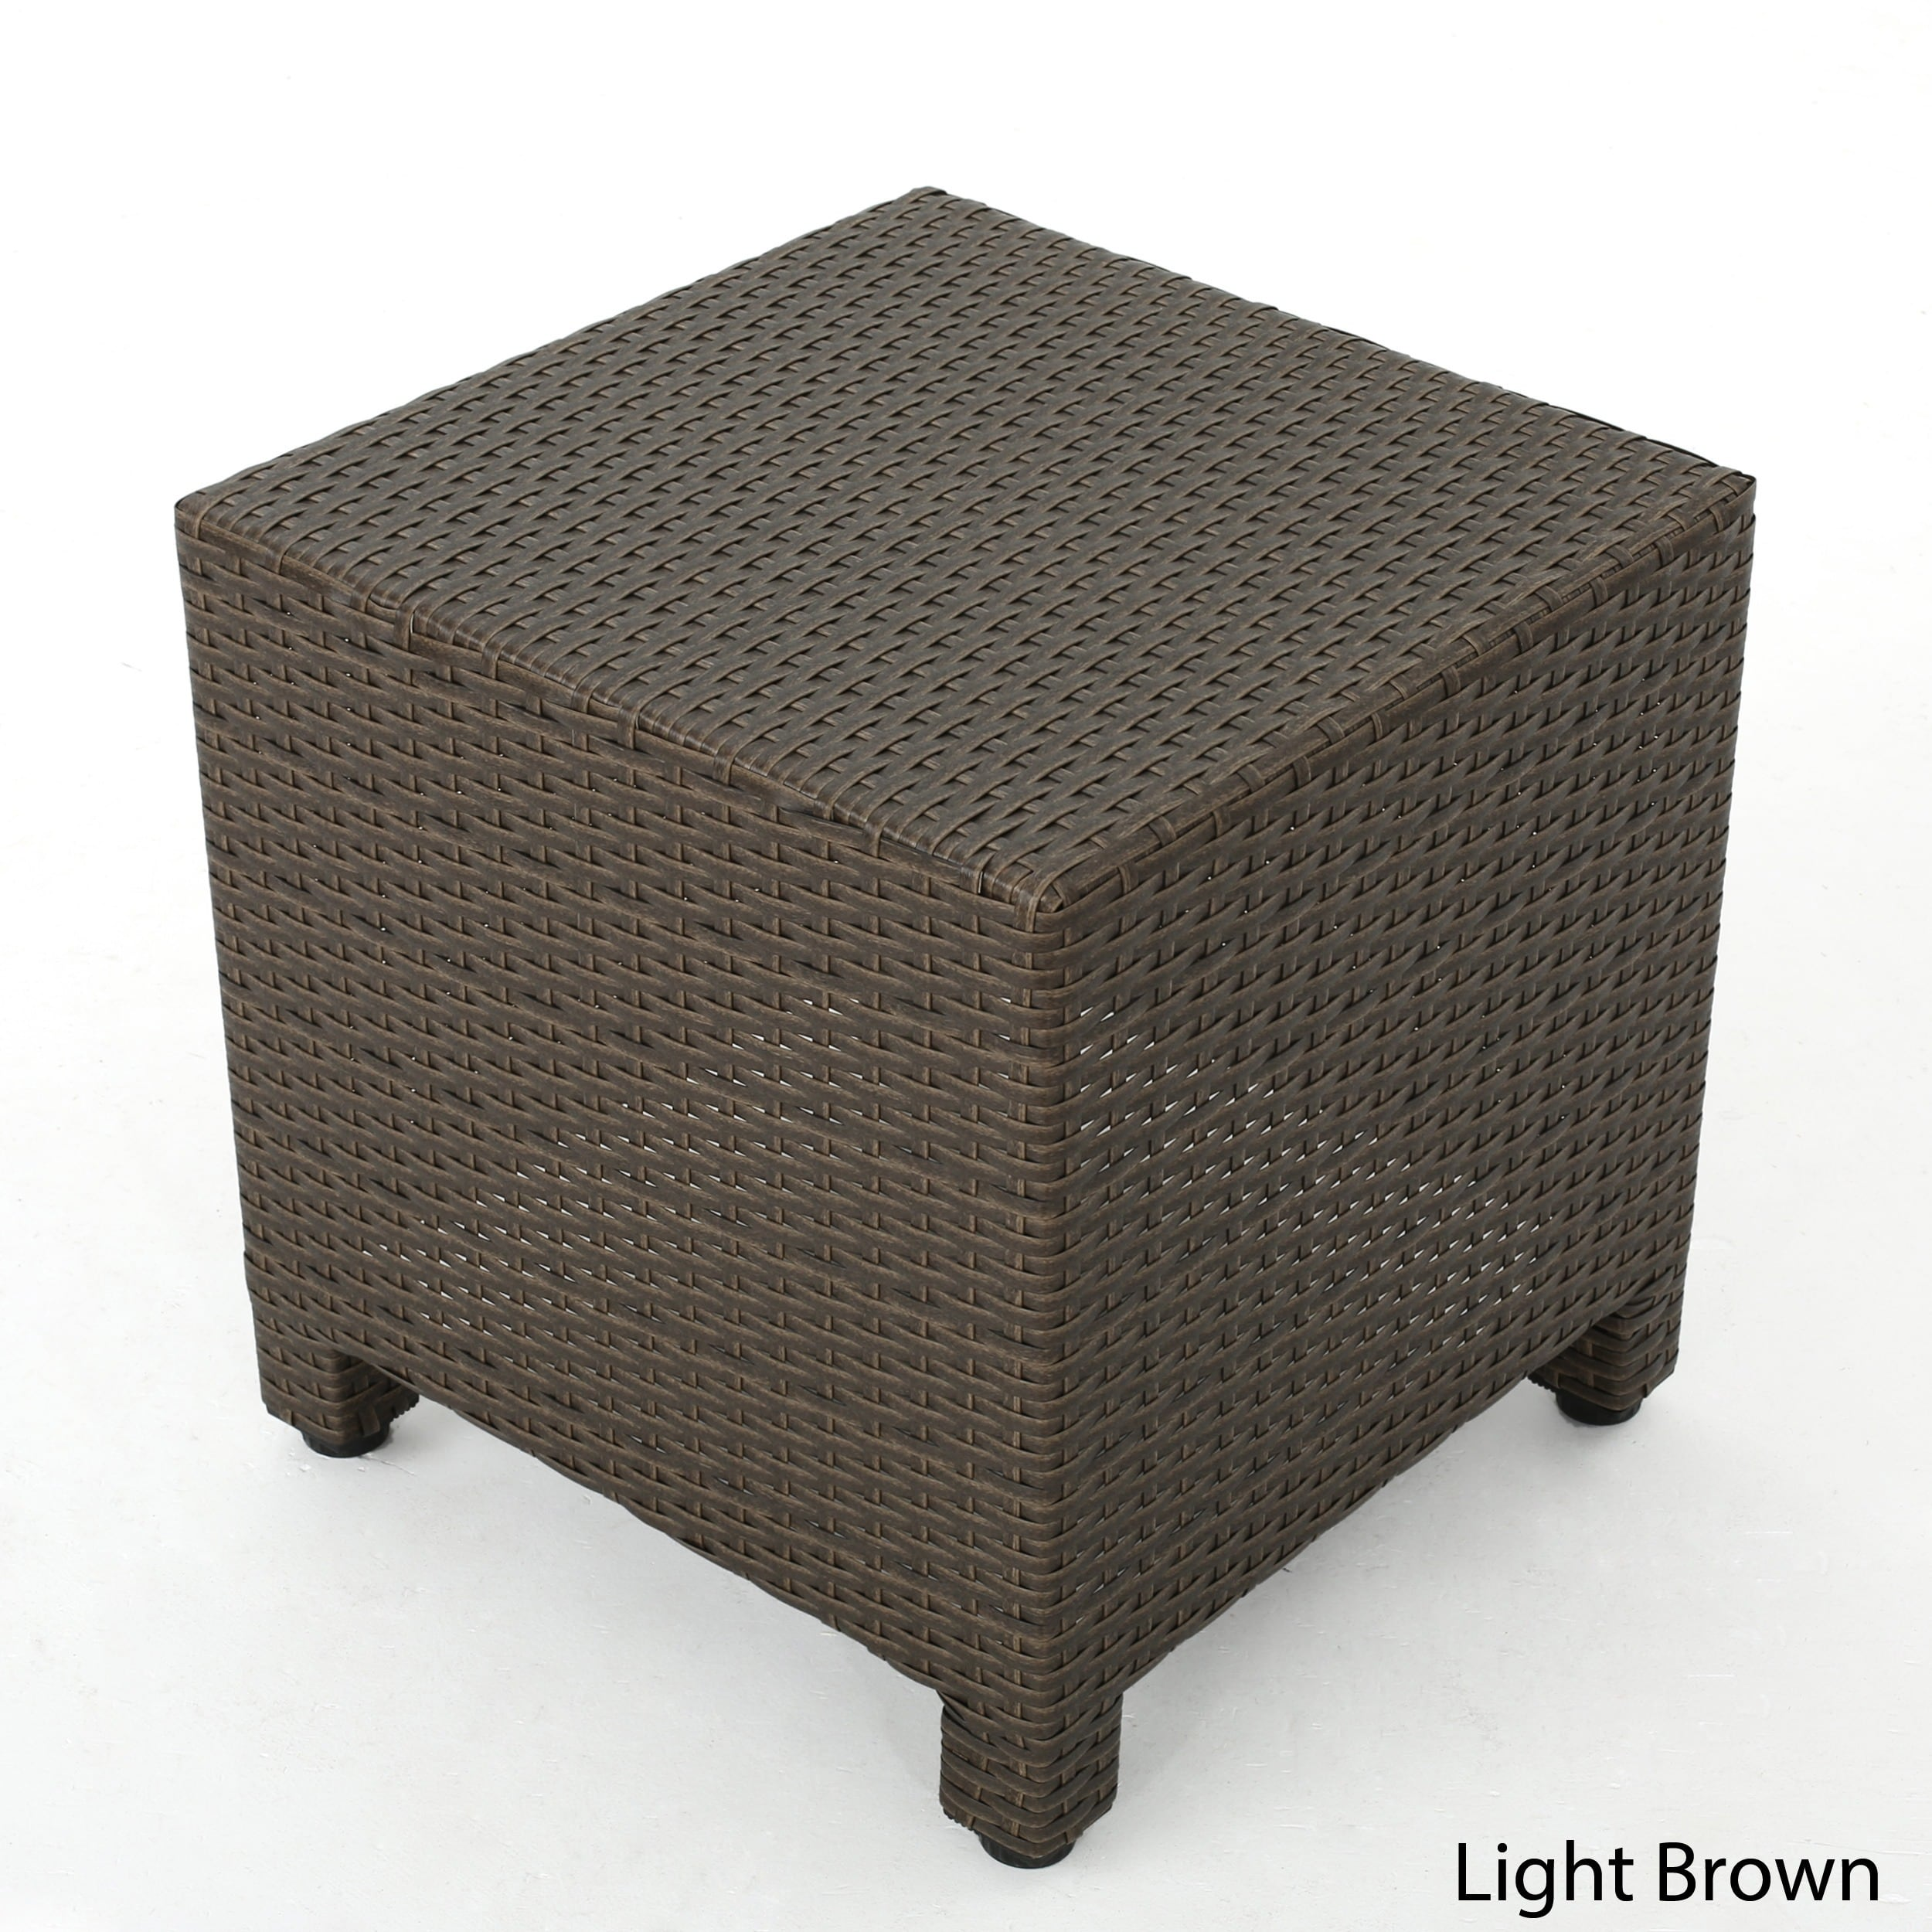 christopher knight home puerta outdoor wicker square accent side table brown nic and bench oak nightstand monitor stand very thin console lucite coffee base dale tiffany dragonfly